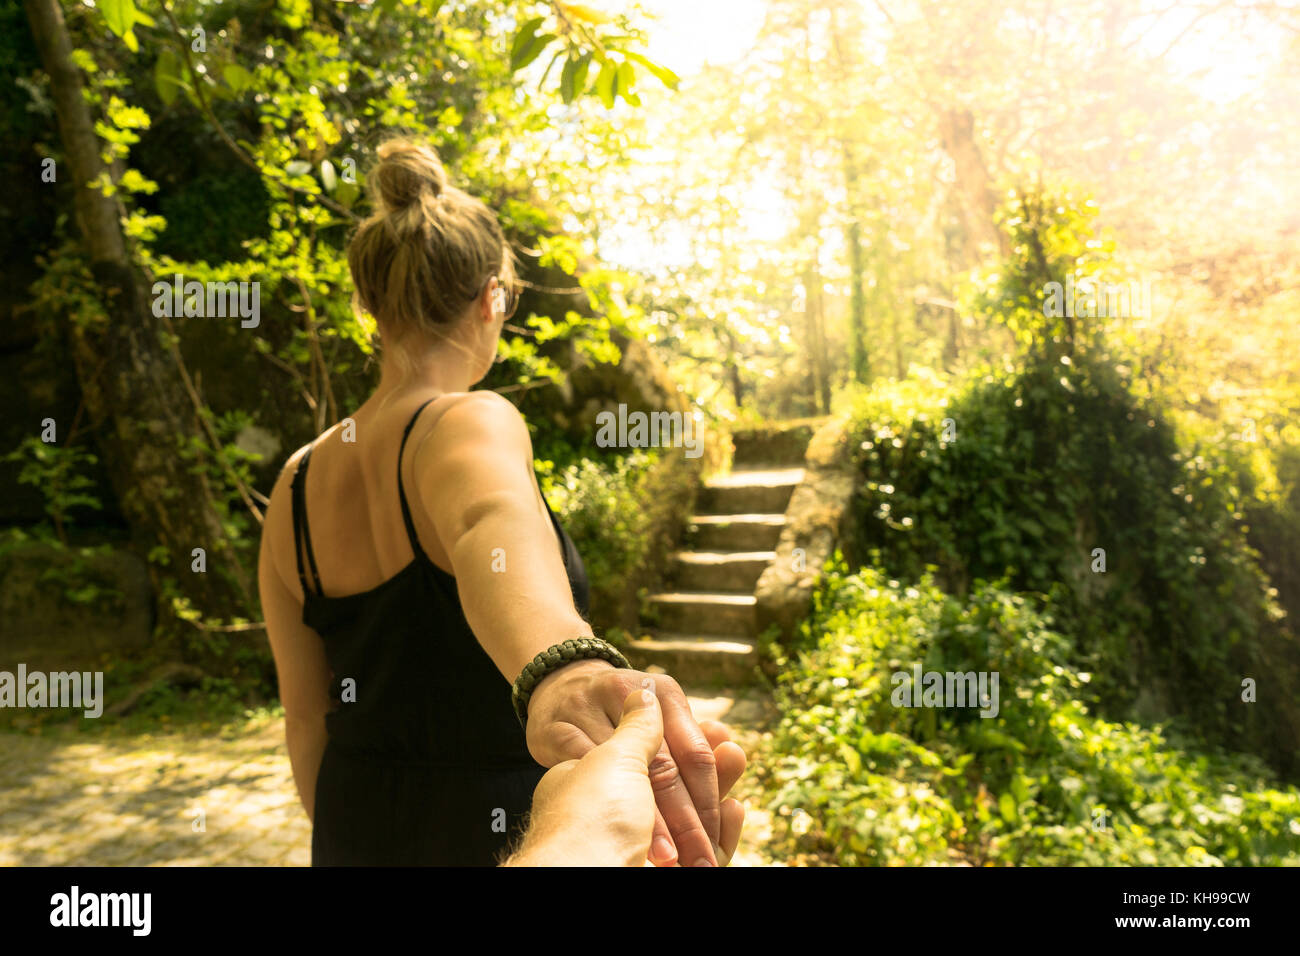 Coulple holding hands in a garden. Walking together toward stairs. - Stock Image